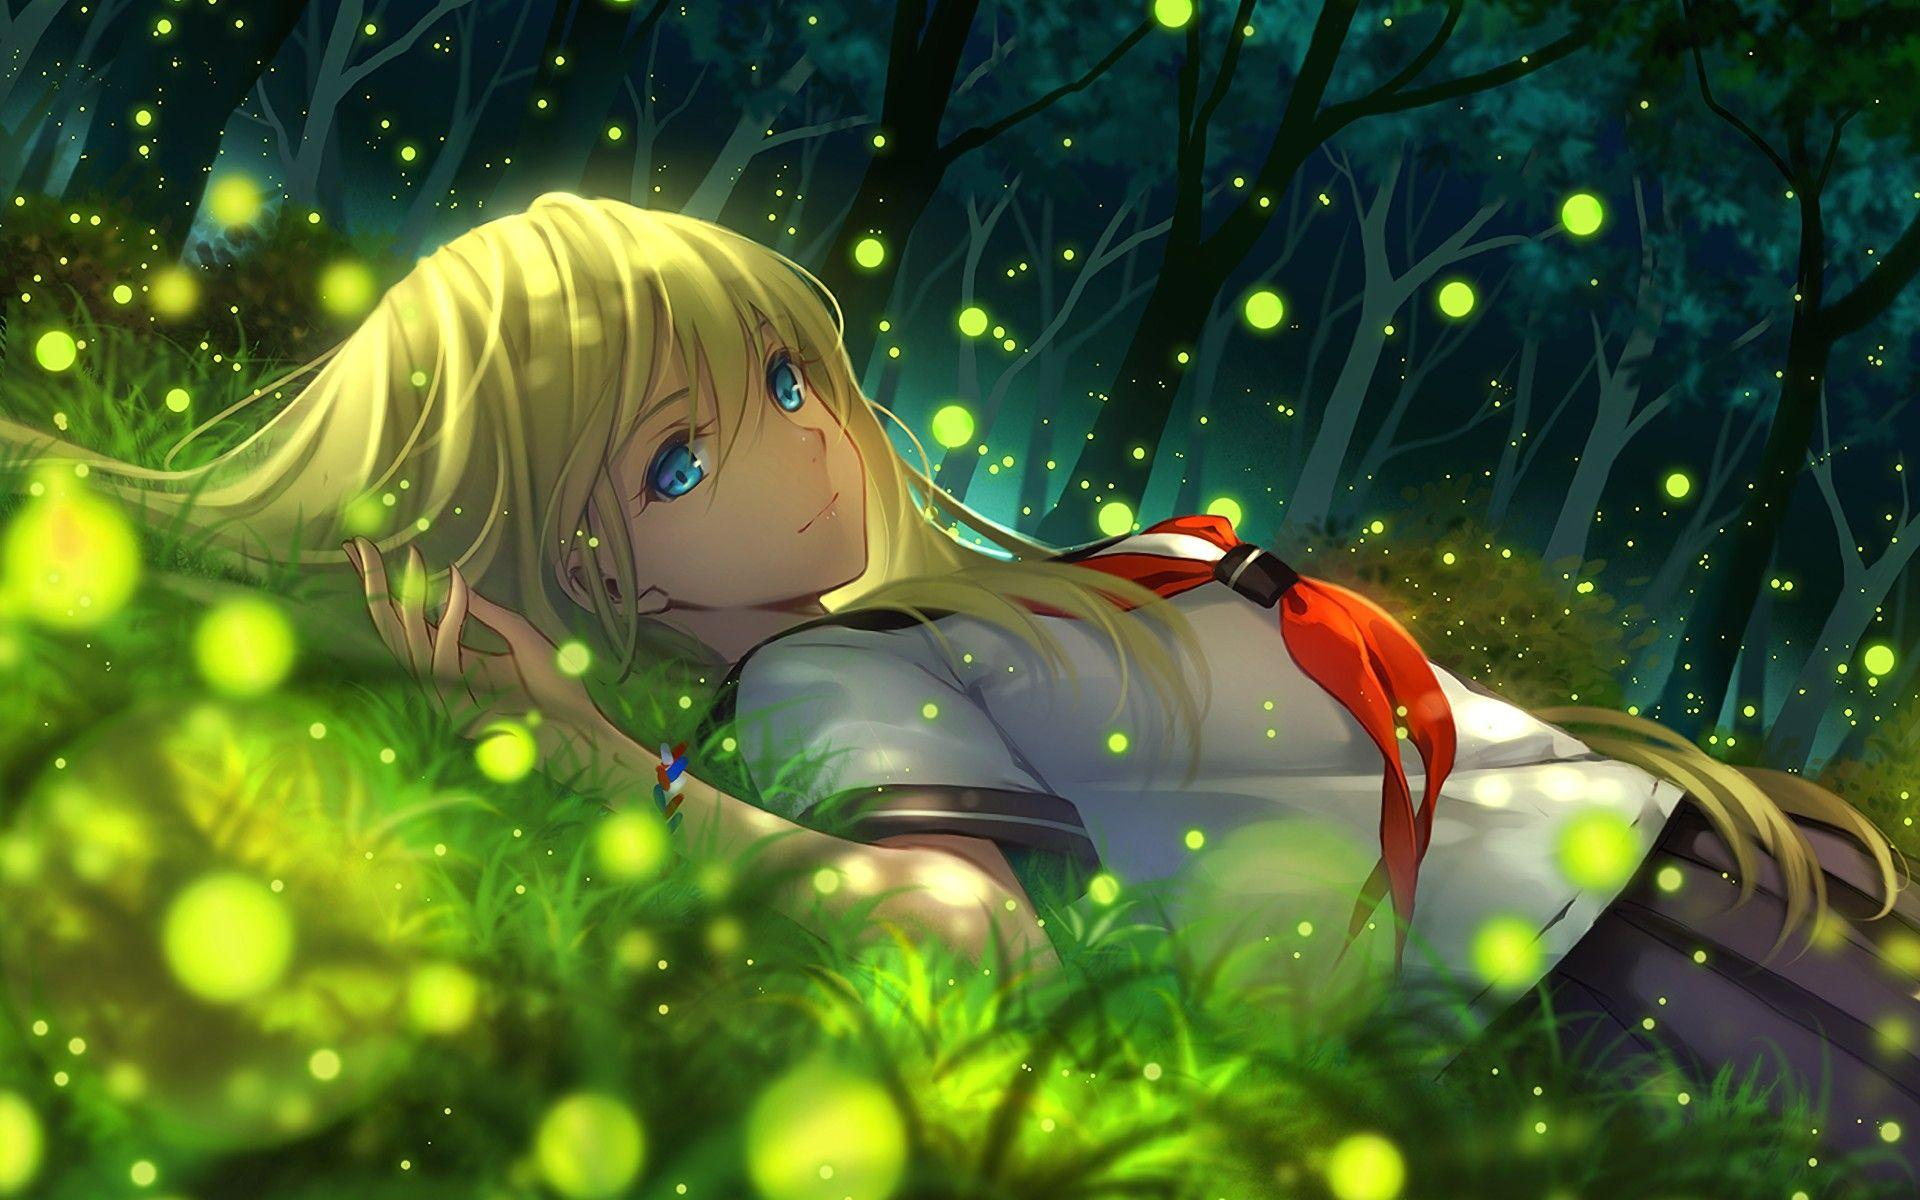 Cool Anime Laptop Wallpapers Wallpaper Cave